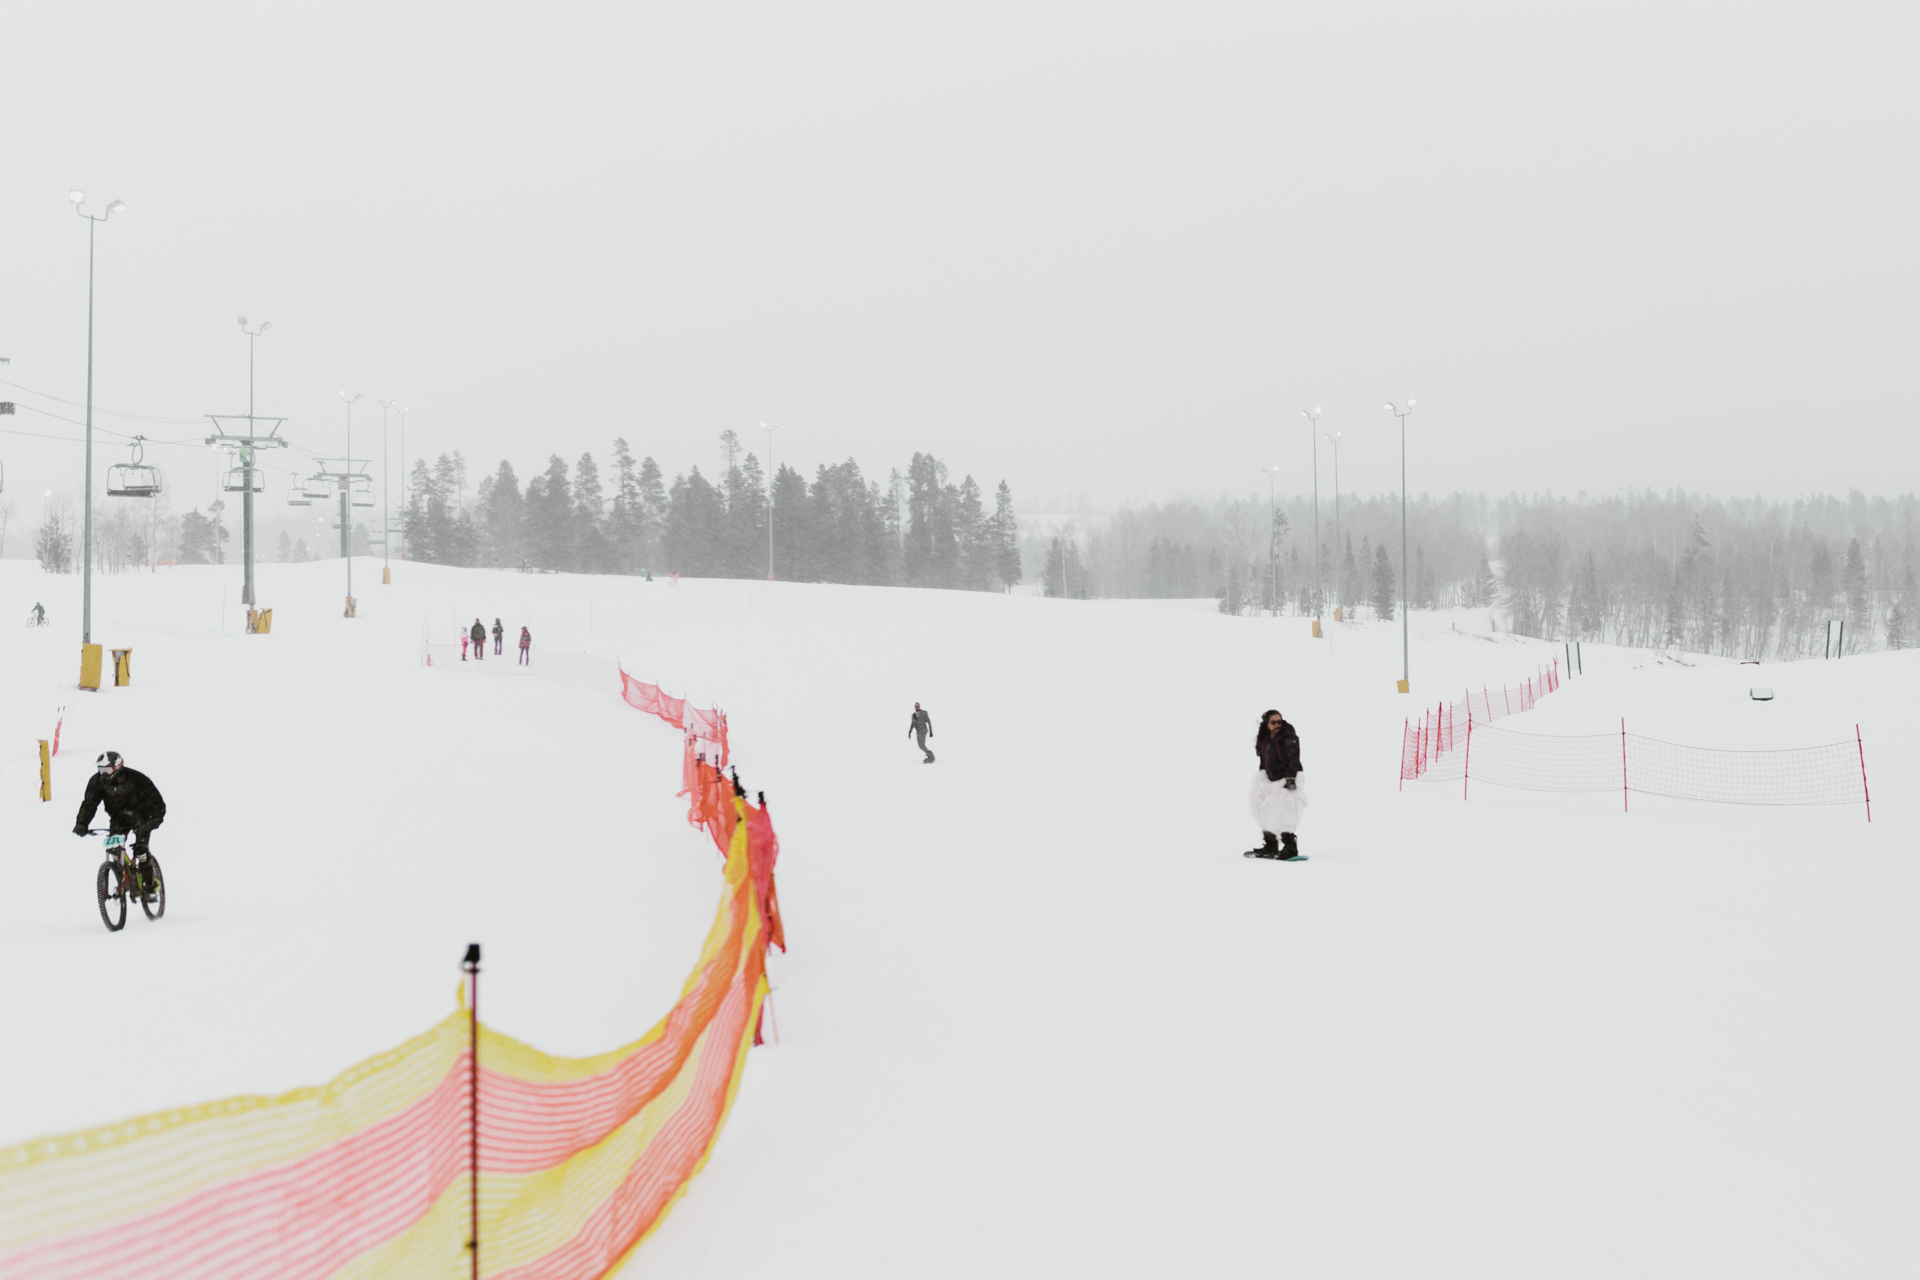 snowy-winter-outdoor-ski-resort-wedding-b-2.jpg